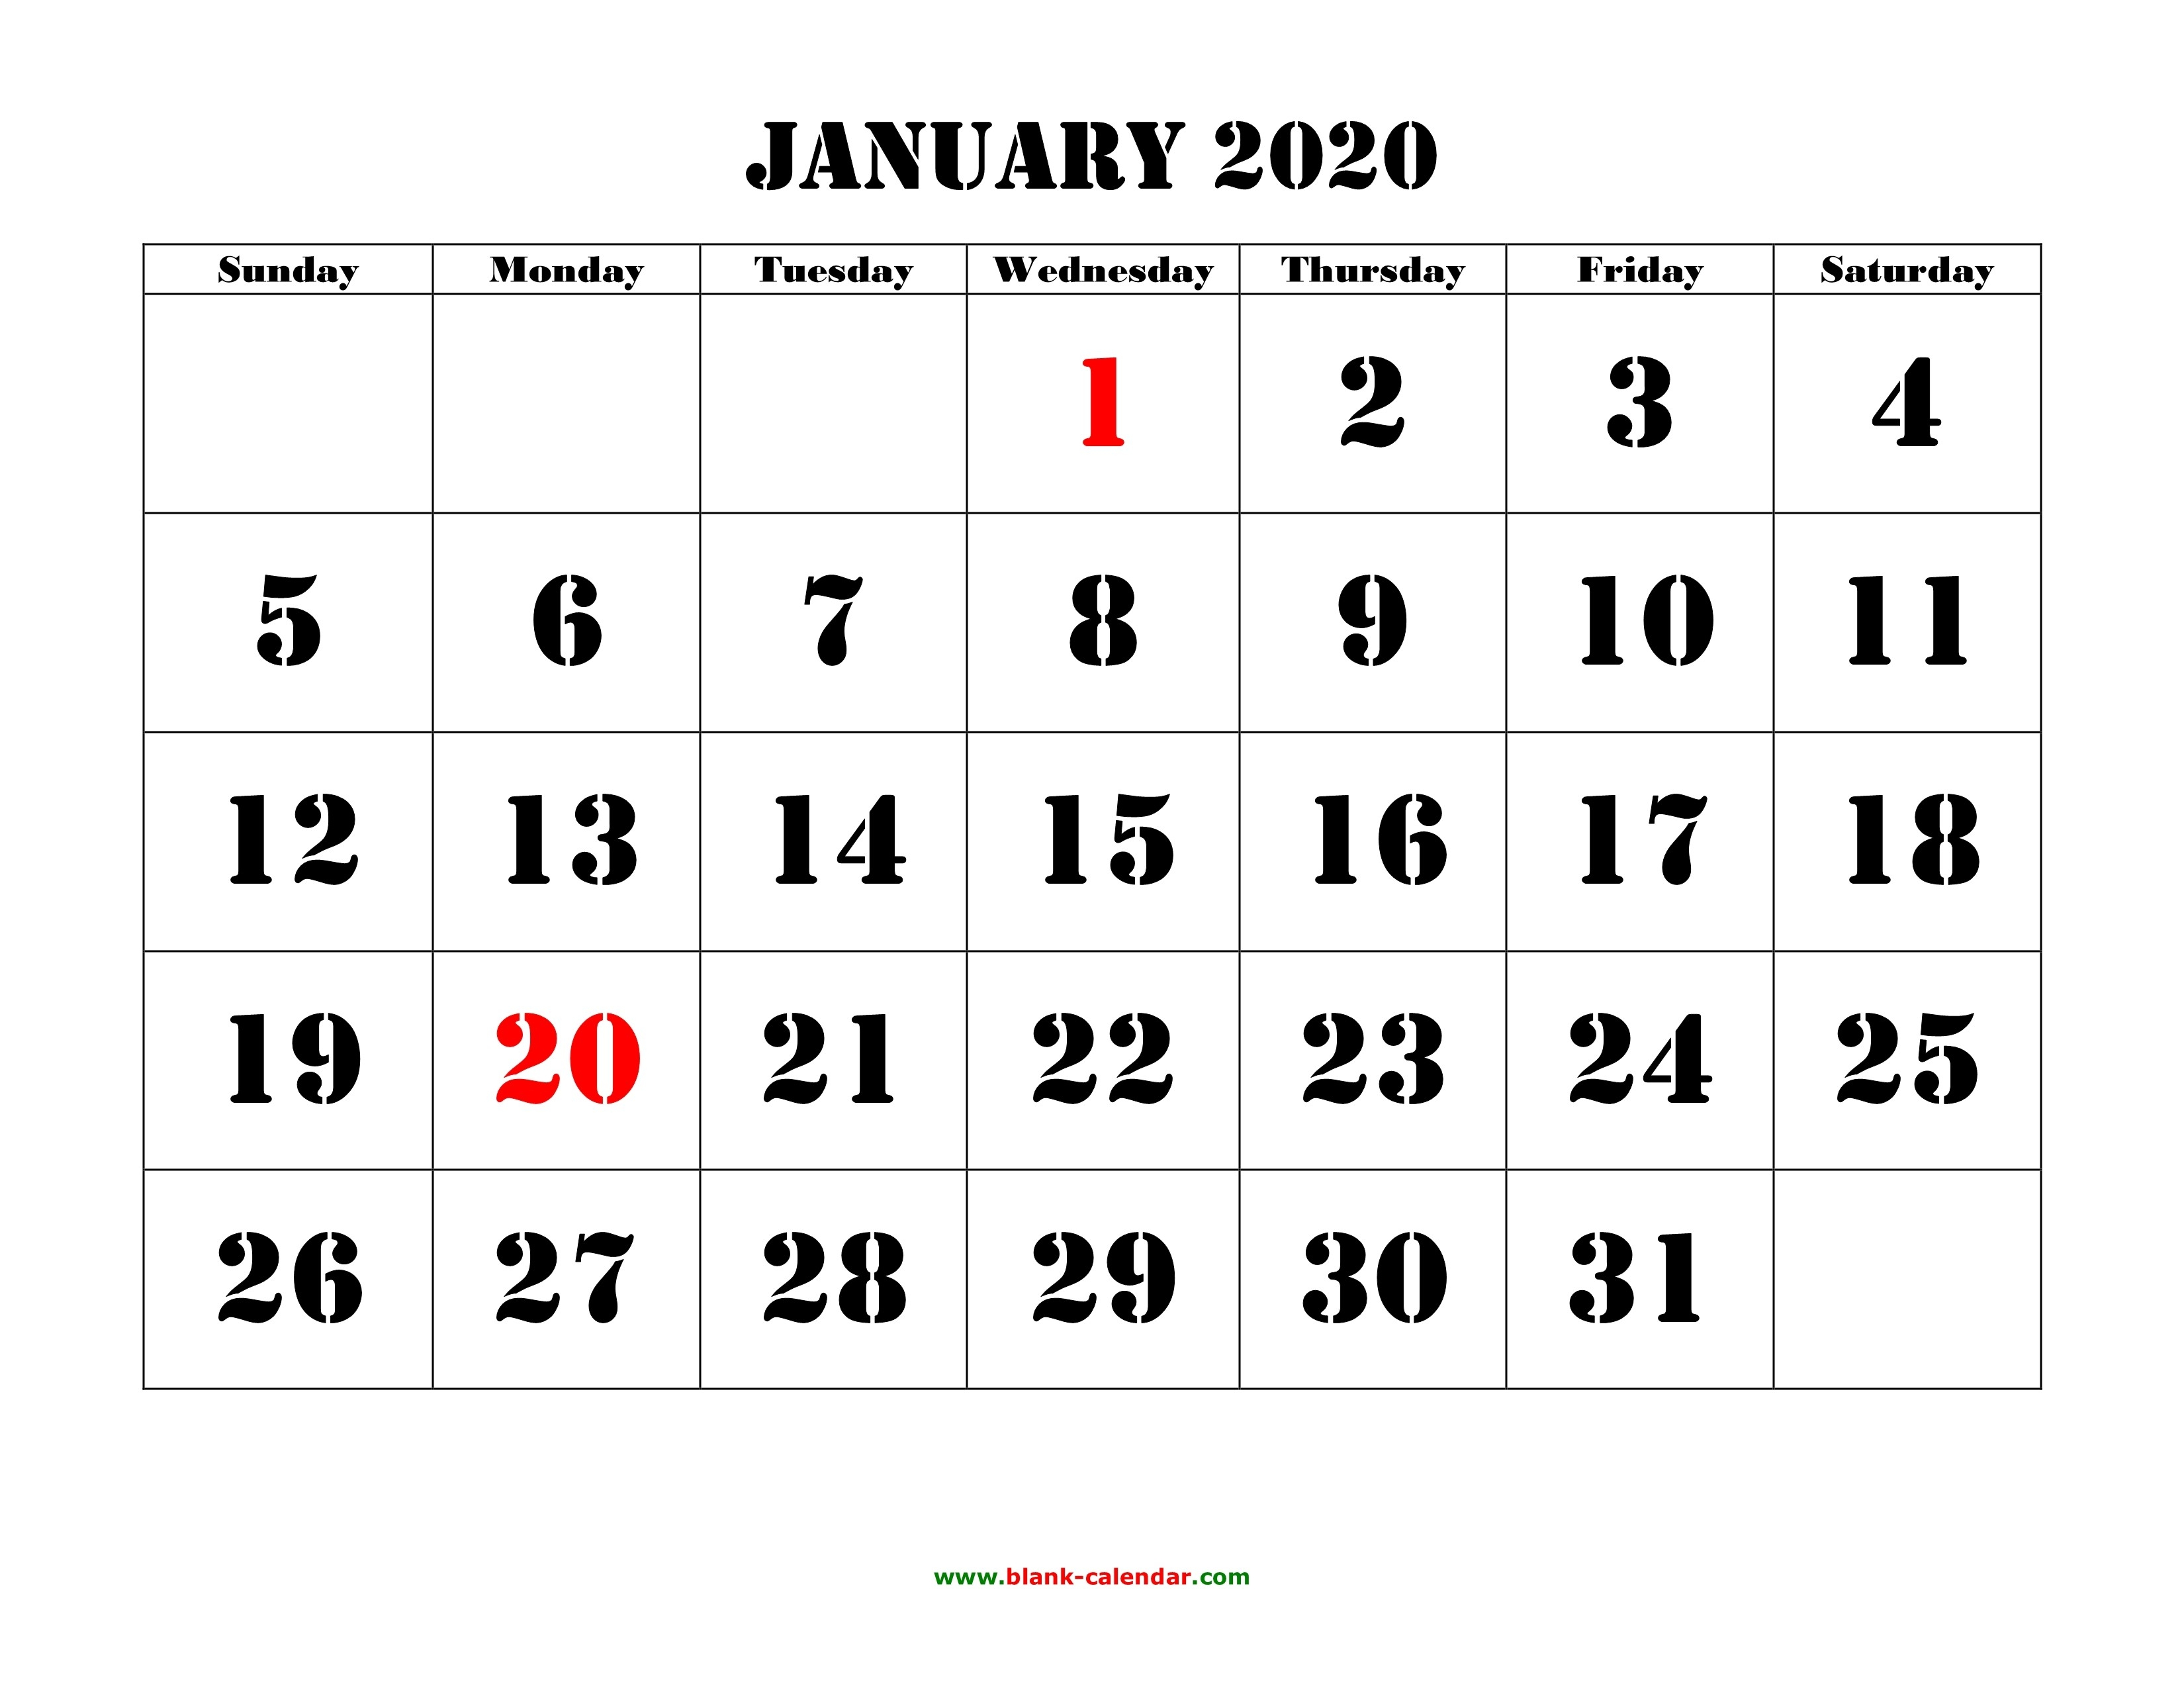 Printable Calendar 2020 | Free Download Yearly Calendar-Printable Blank Calendar 2020 Two Months Per Page